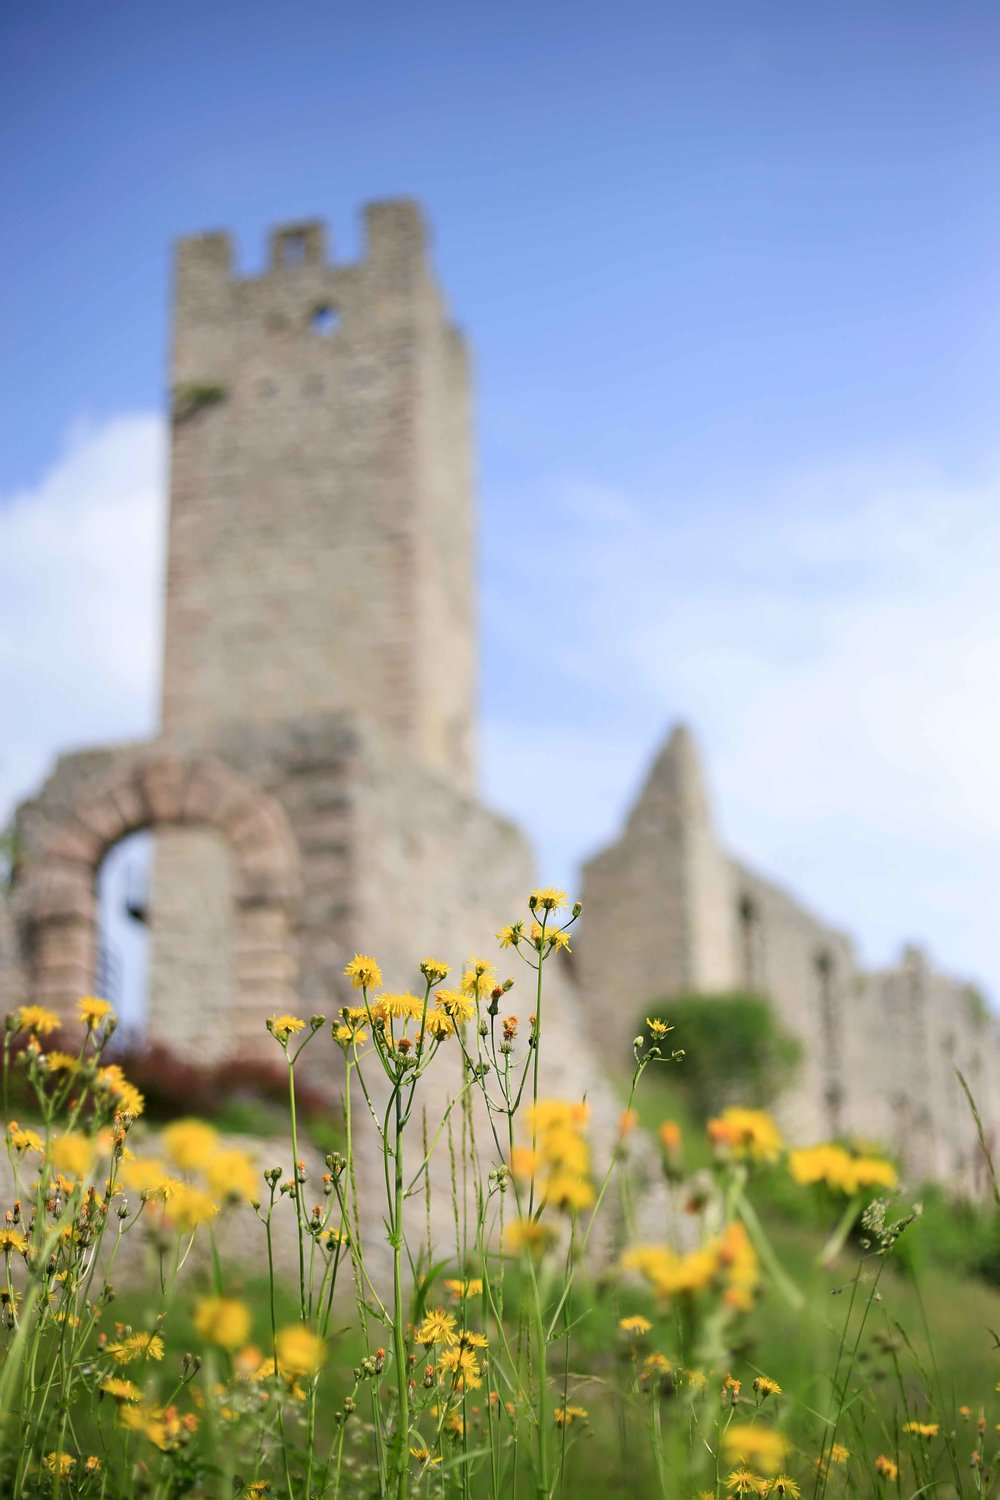 Fields of dandelions in front of Belfort Castle